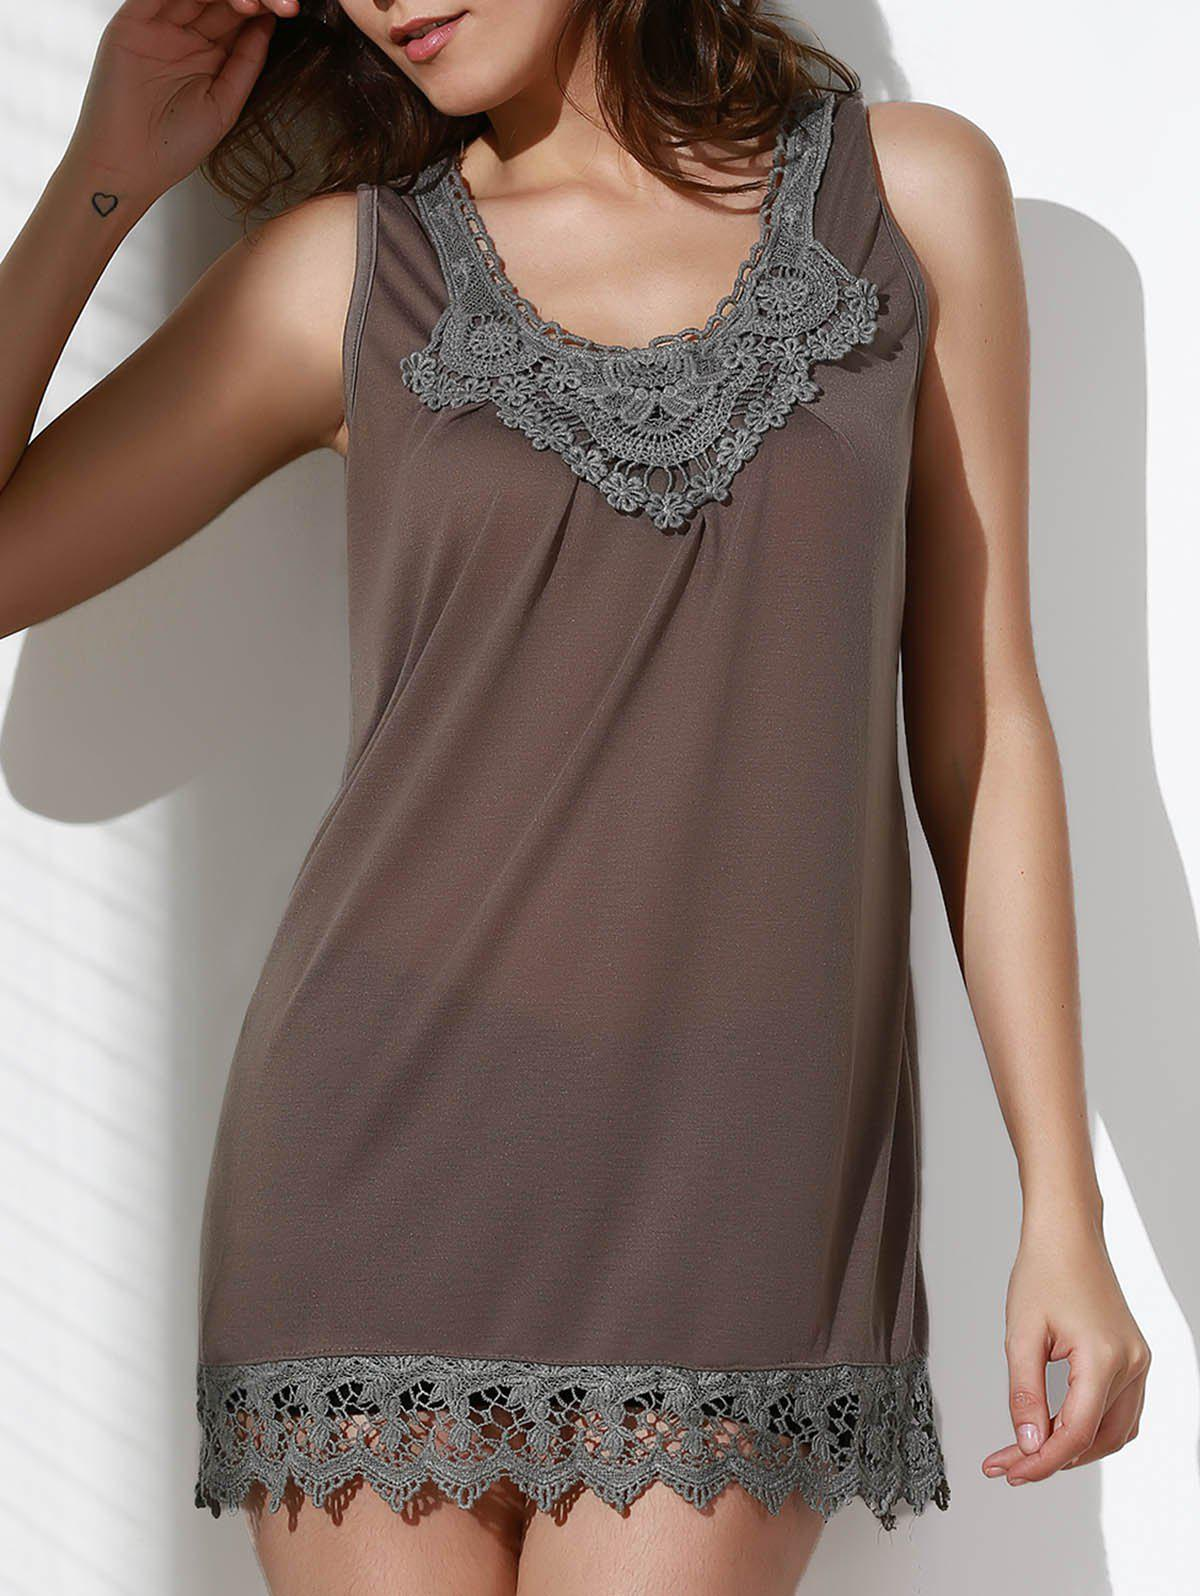 Casual Style Scoop Neck Sleeveless Crochet Laciness Spliced Women's Tank Top